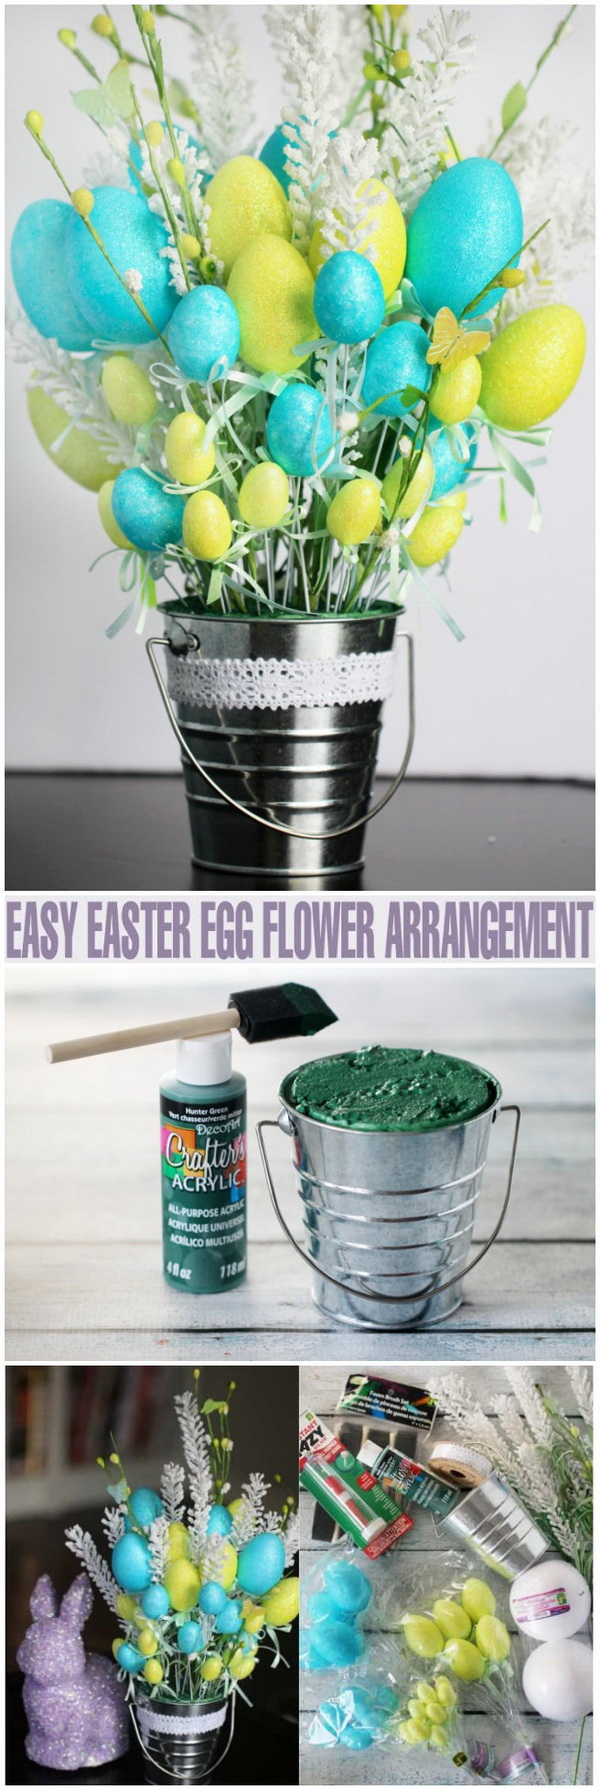 DIY Easter Decoration Ideas: Easy Easter Egg Flower Arrangement.